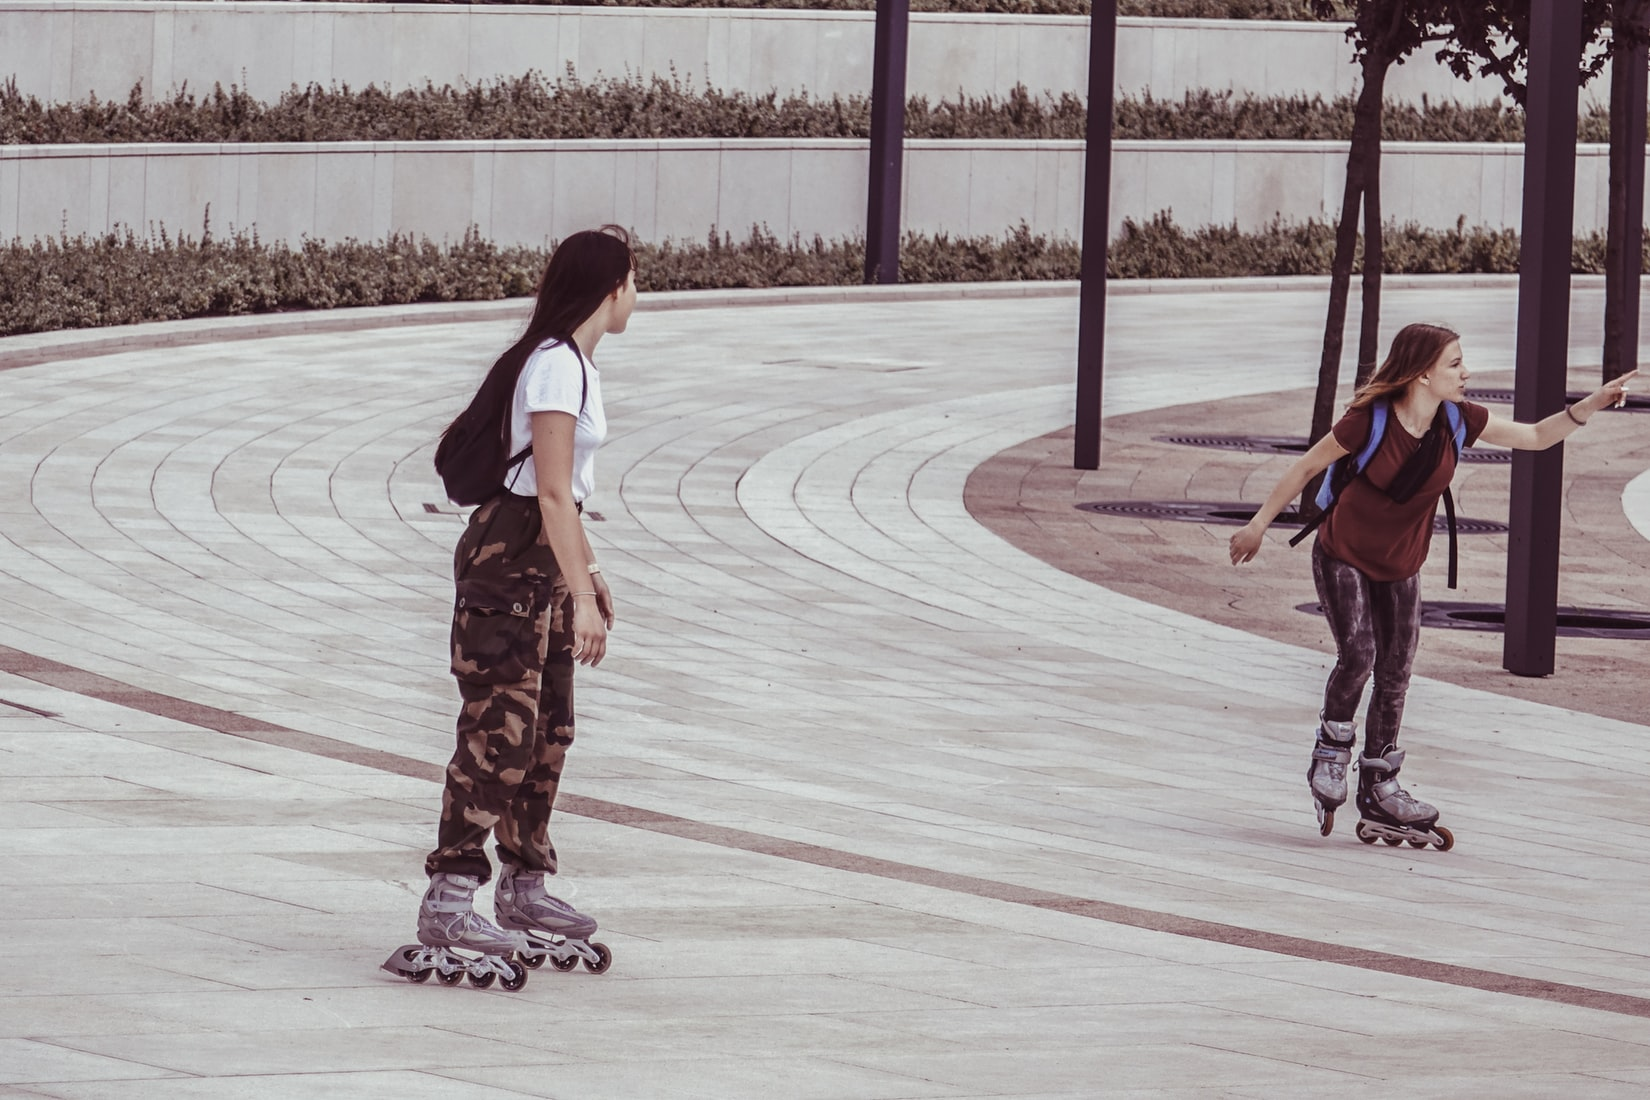 Rollerblading is a fun low-impact exercise, that will get your heart racing.